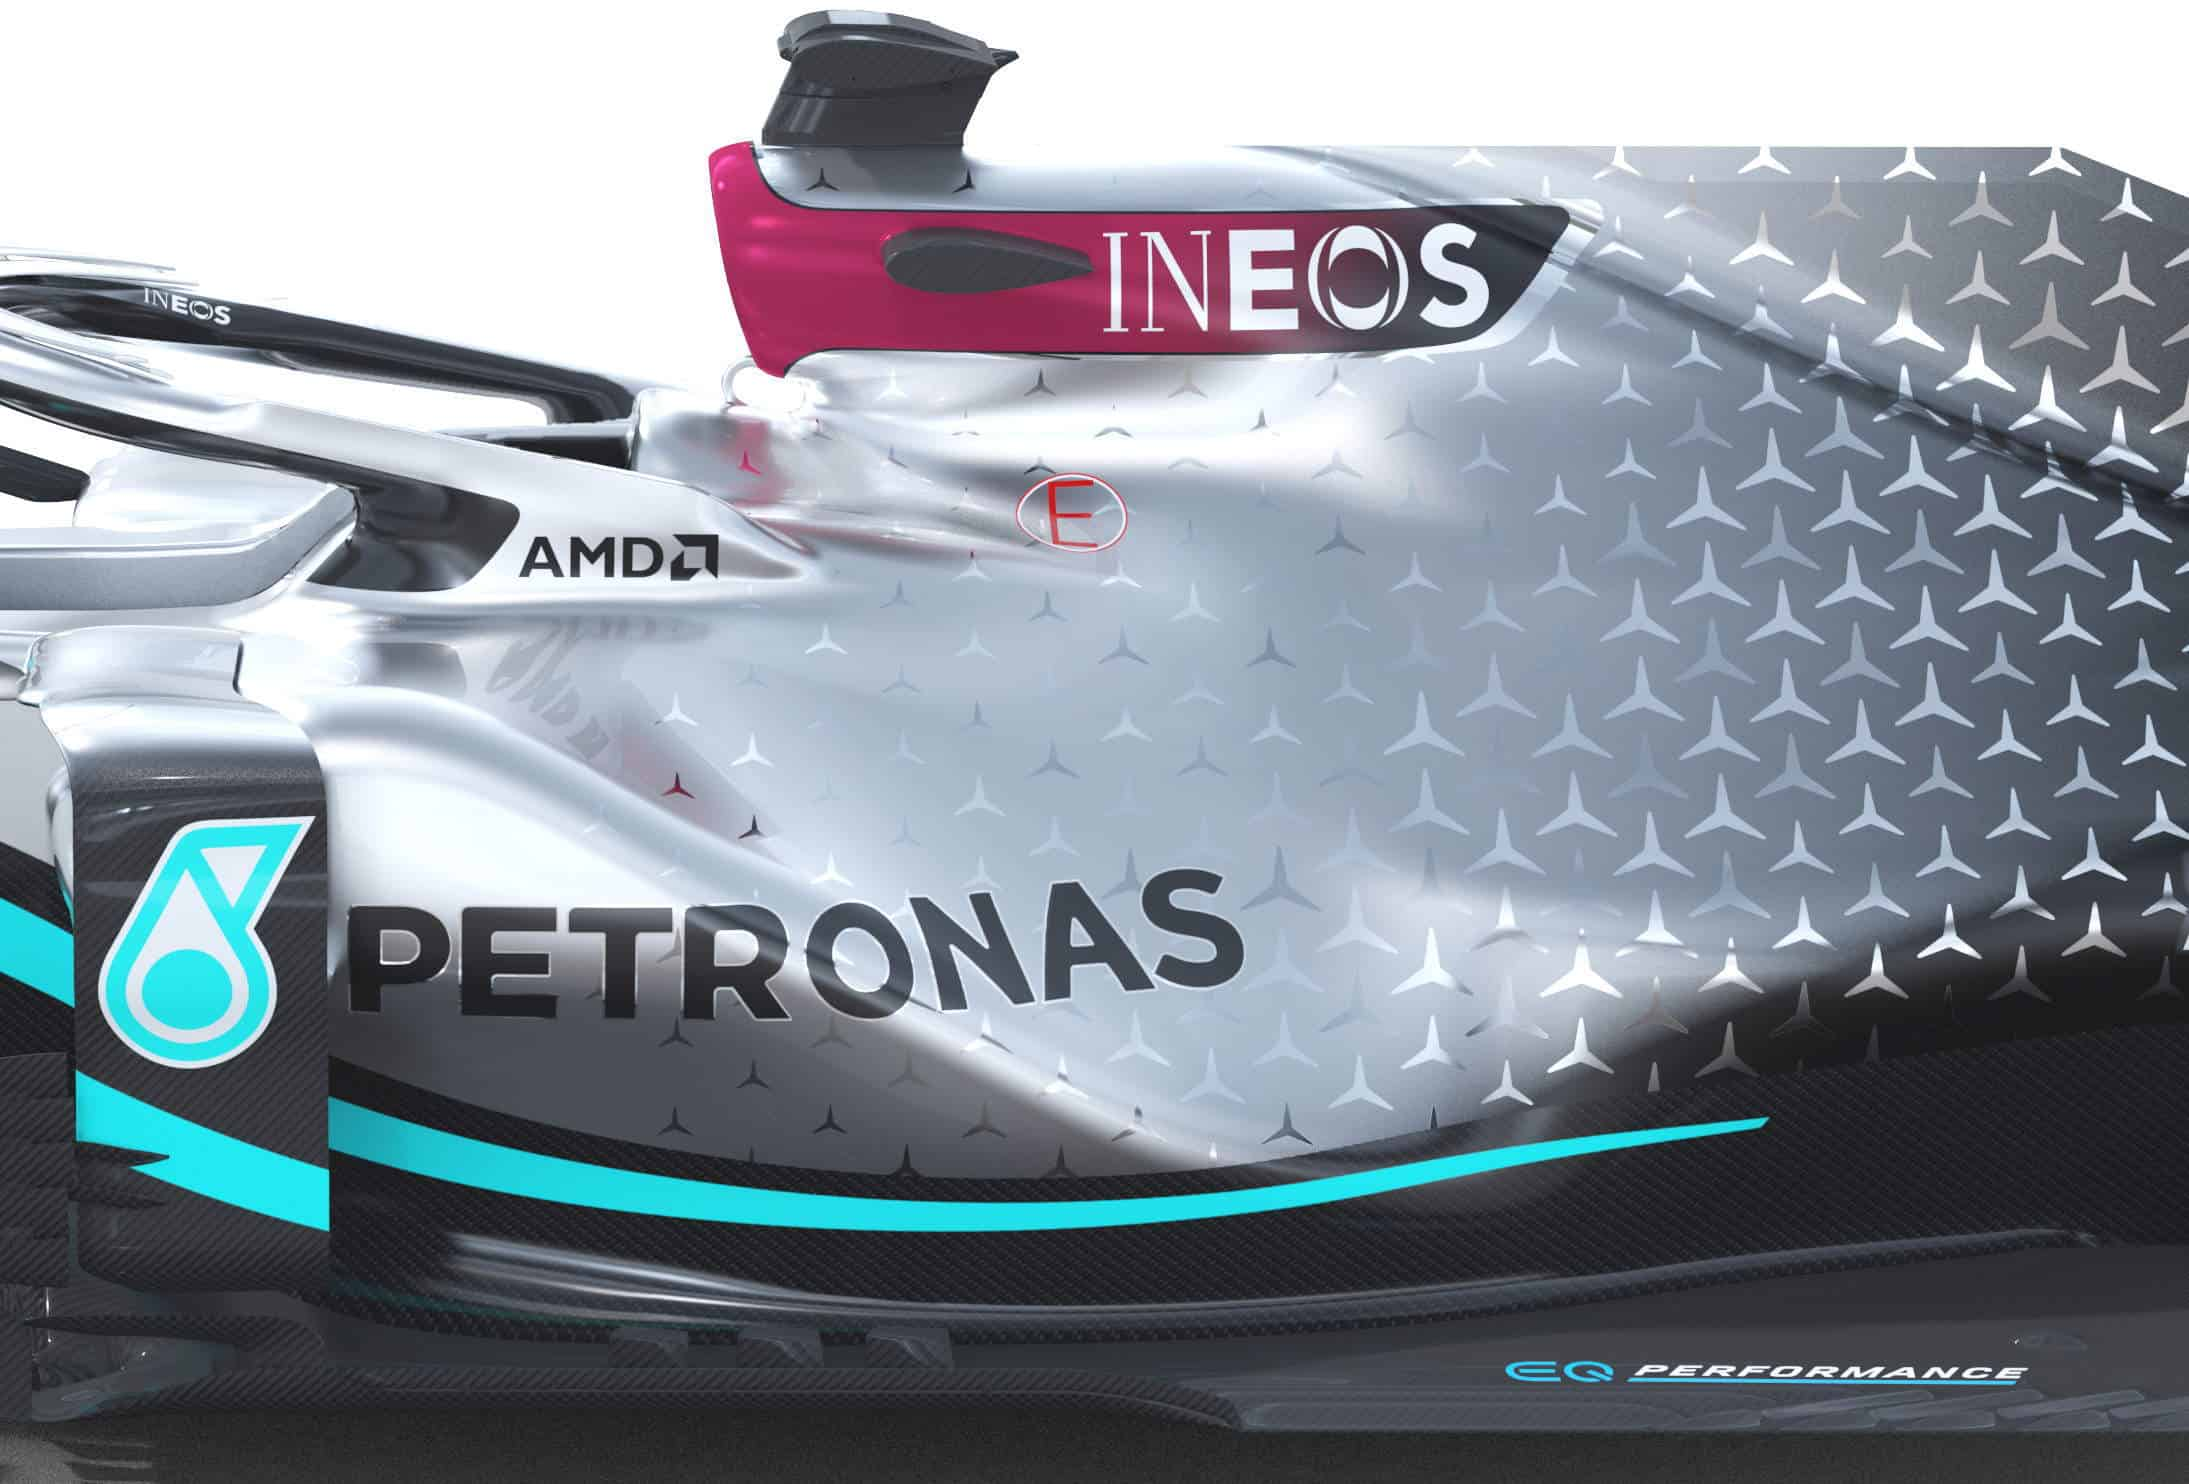 2020 F1 Mercedes F1 W11 sidepods side view Photo Daimler Edited by MAXF1net